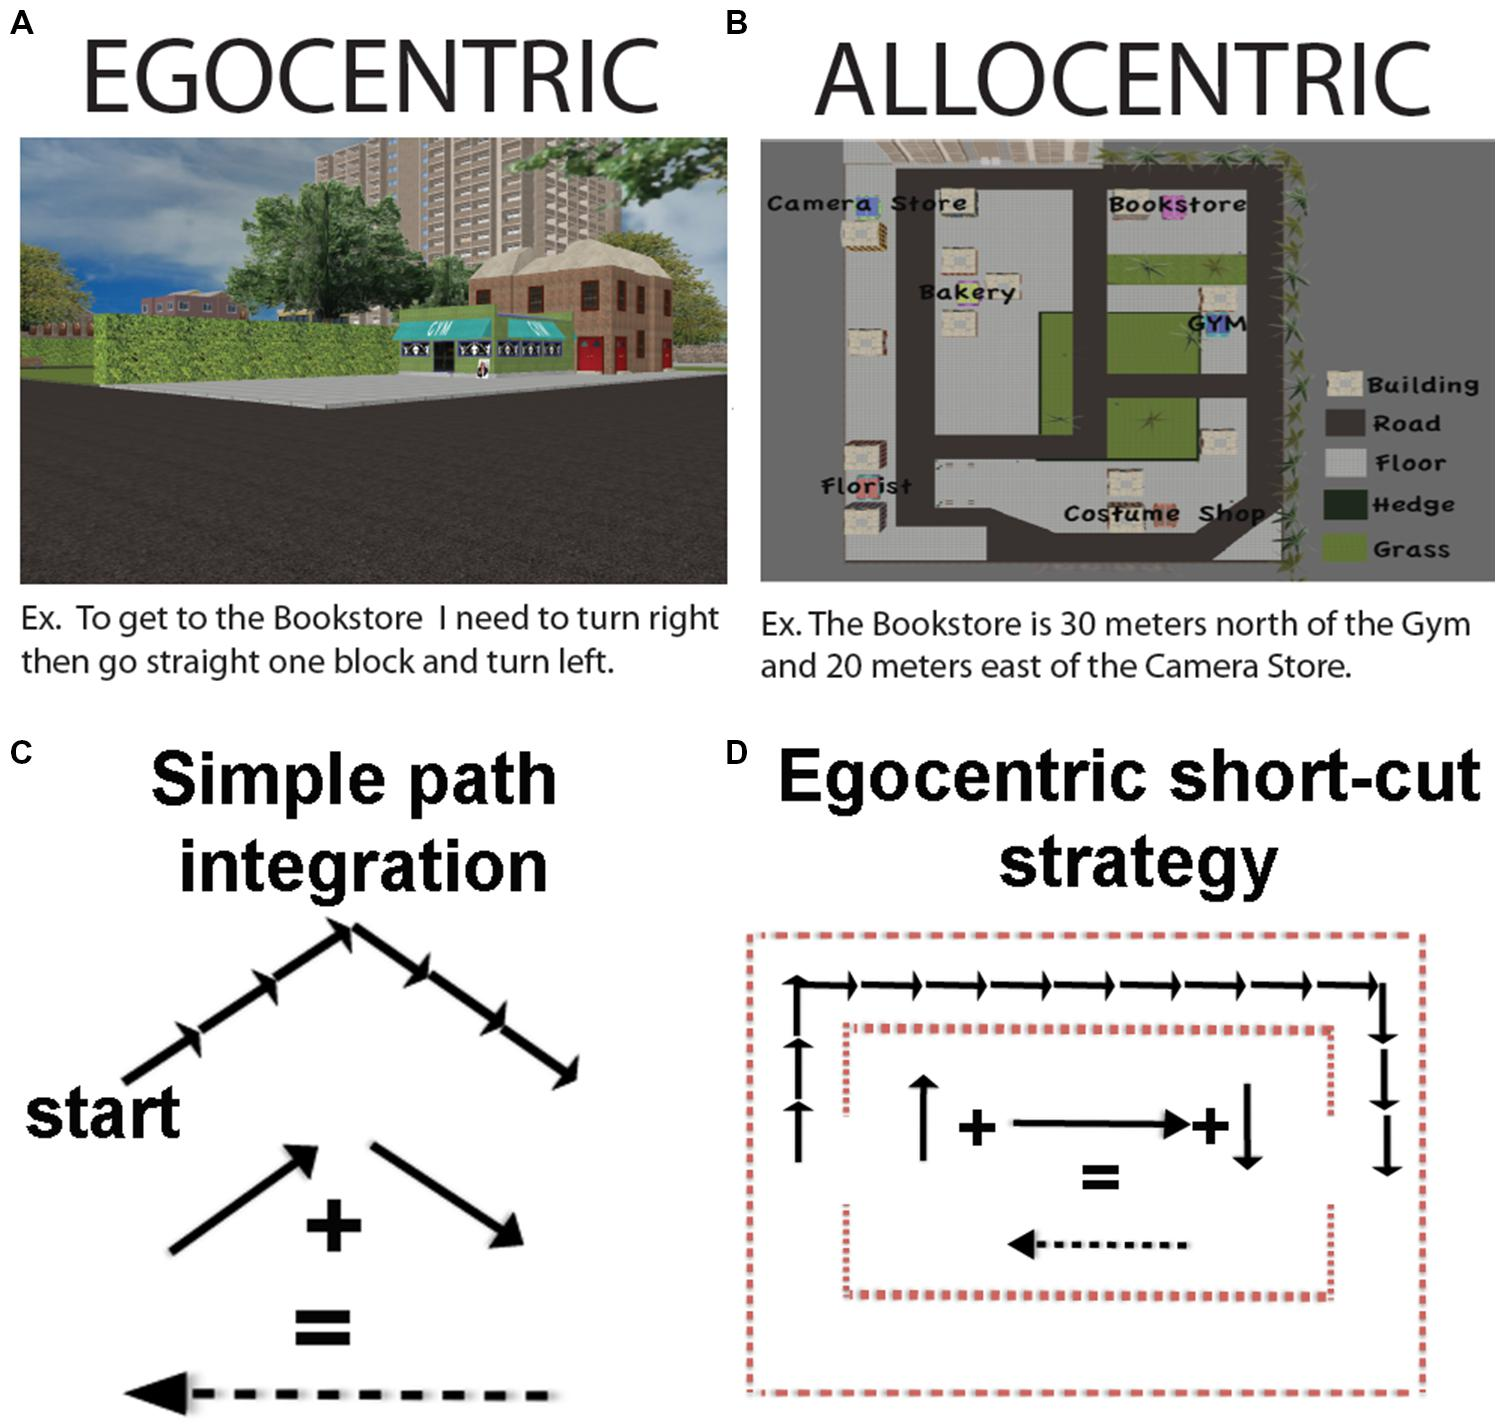 Frontiers A Critical Review Of The Allocentric Spatial